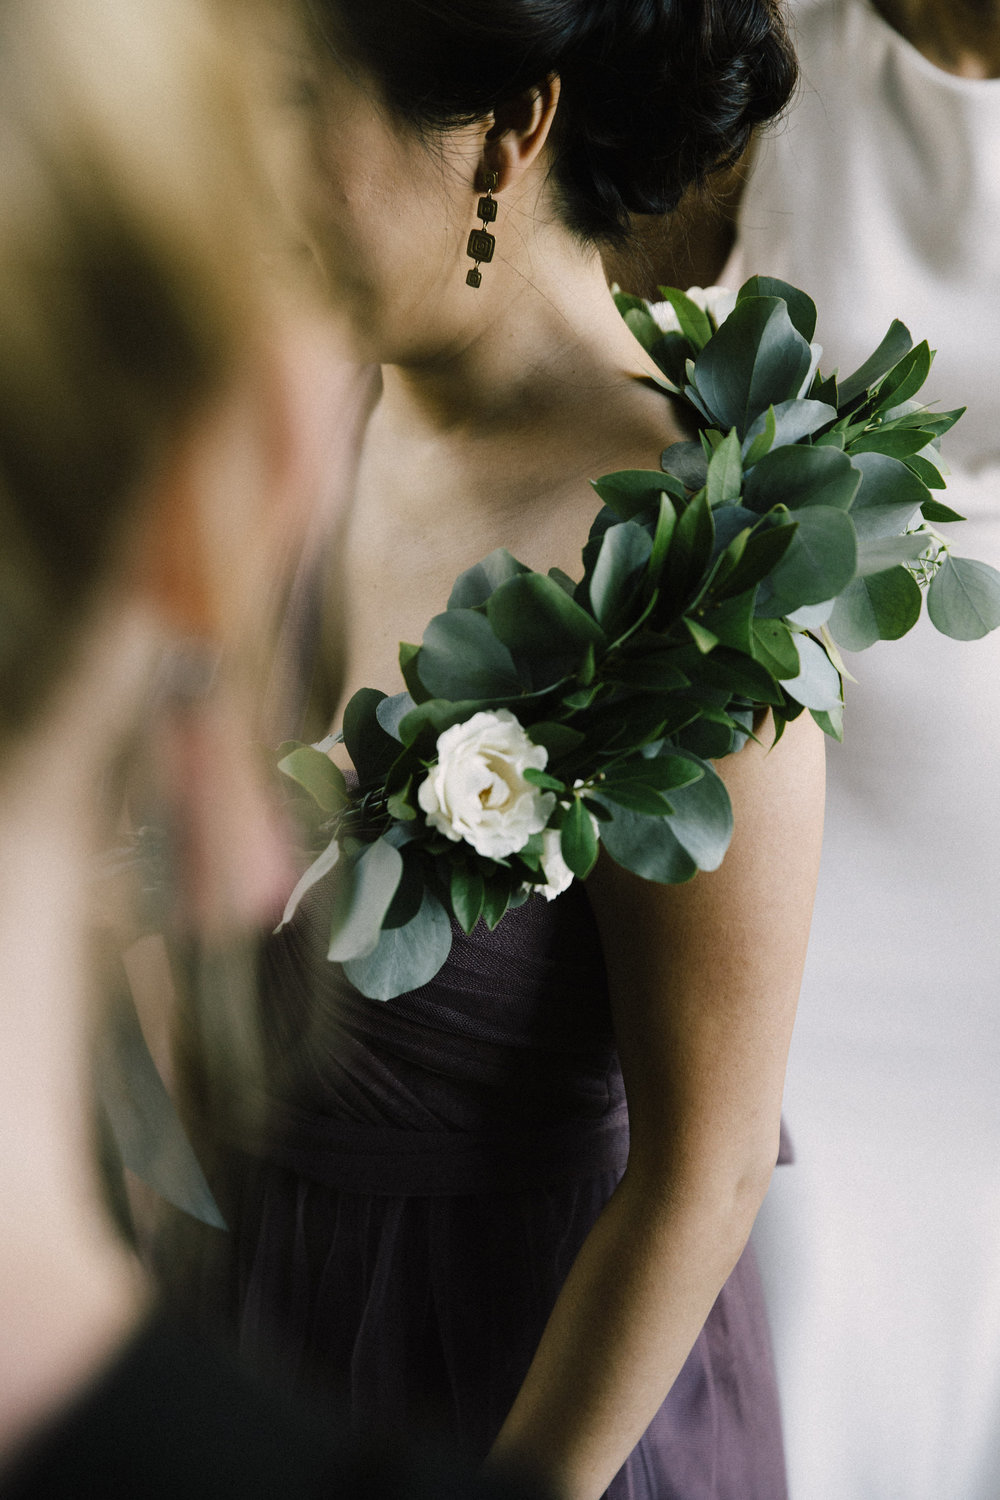 Alternative to bridal bouquets by Venn Floral | Photo by Lucille Lawrence